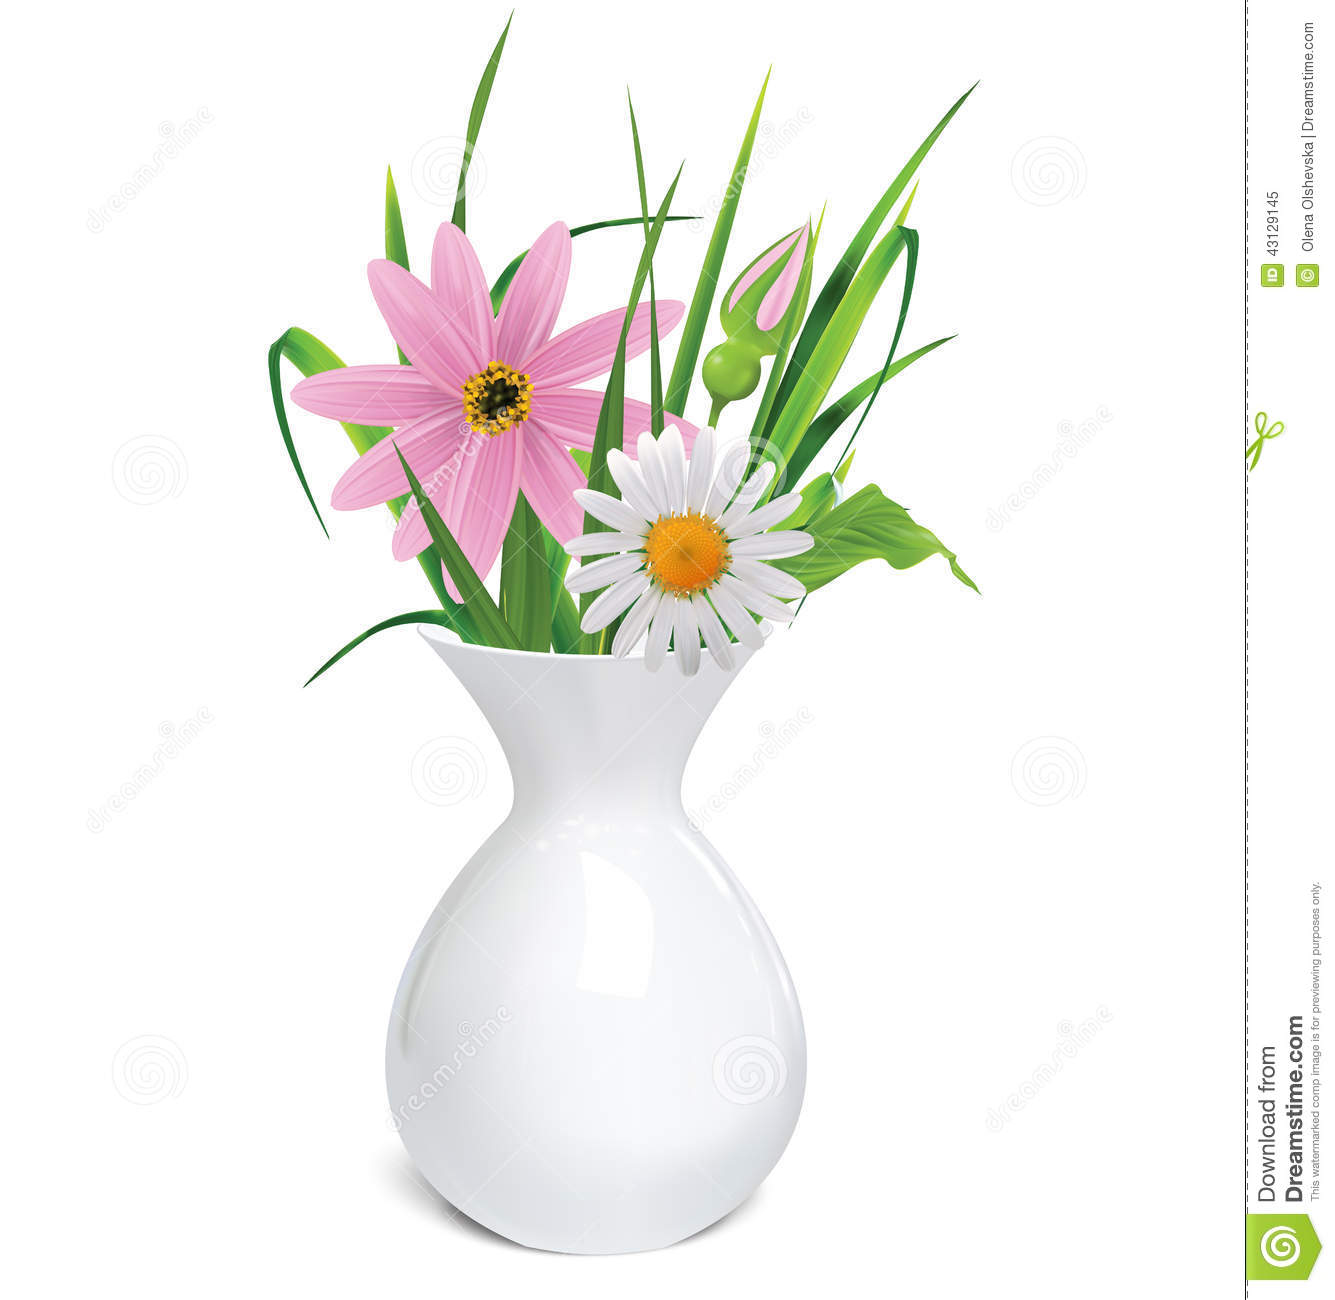 vase blanc avec un bouquet des fleurs et de l 39 herbe d 39 t illustration de vecteur image 43129145. Black Bedroom Furniture Sets. Home Design Ideas